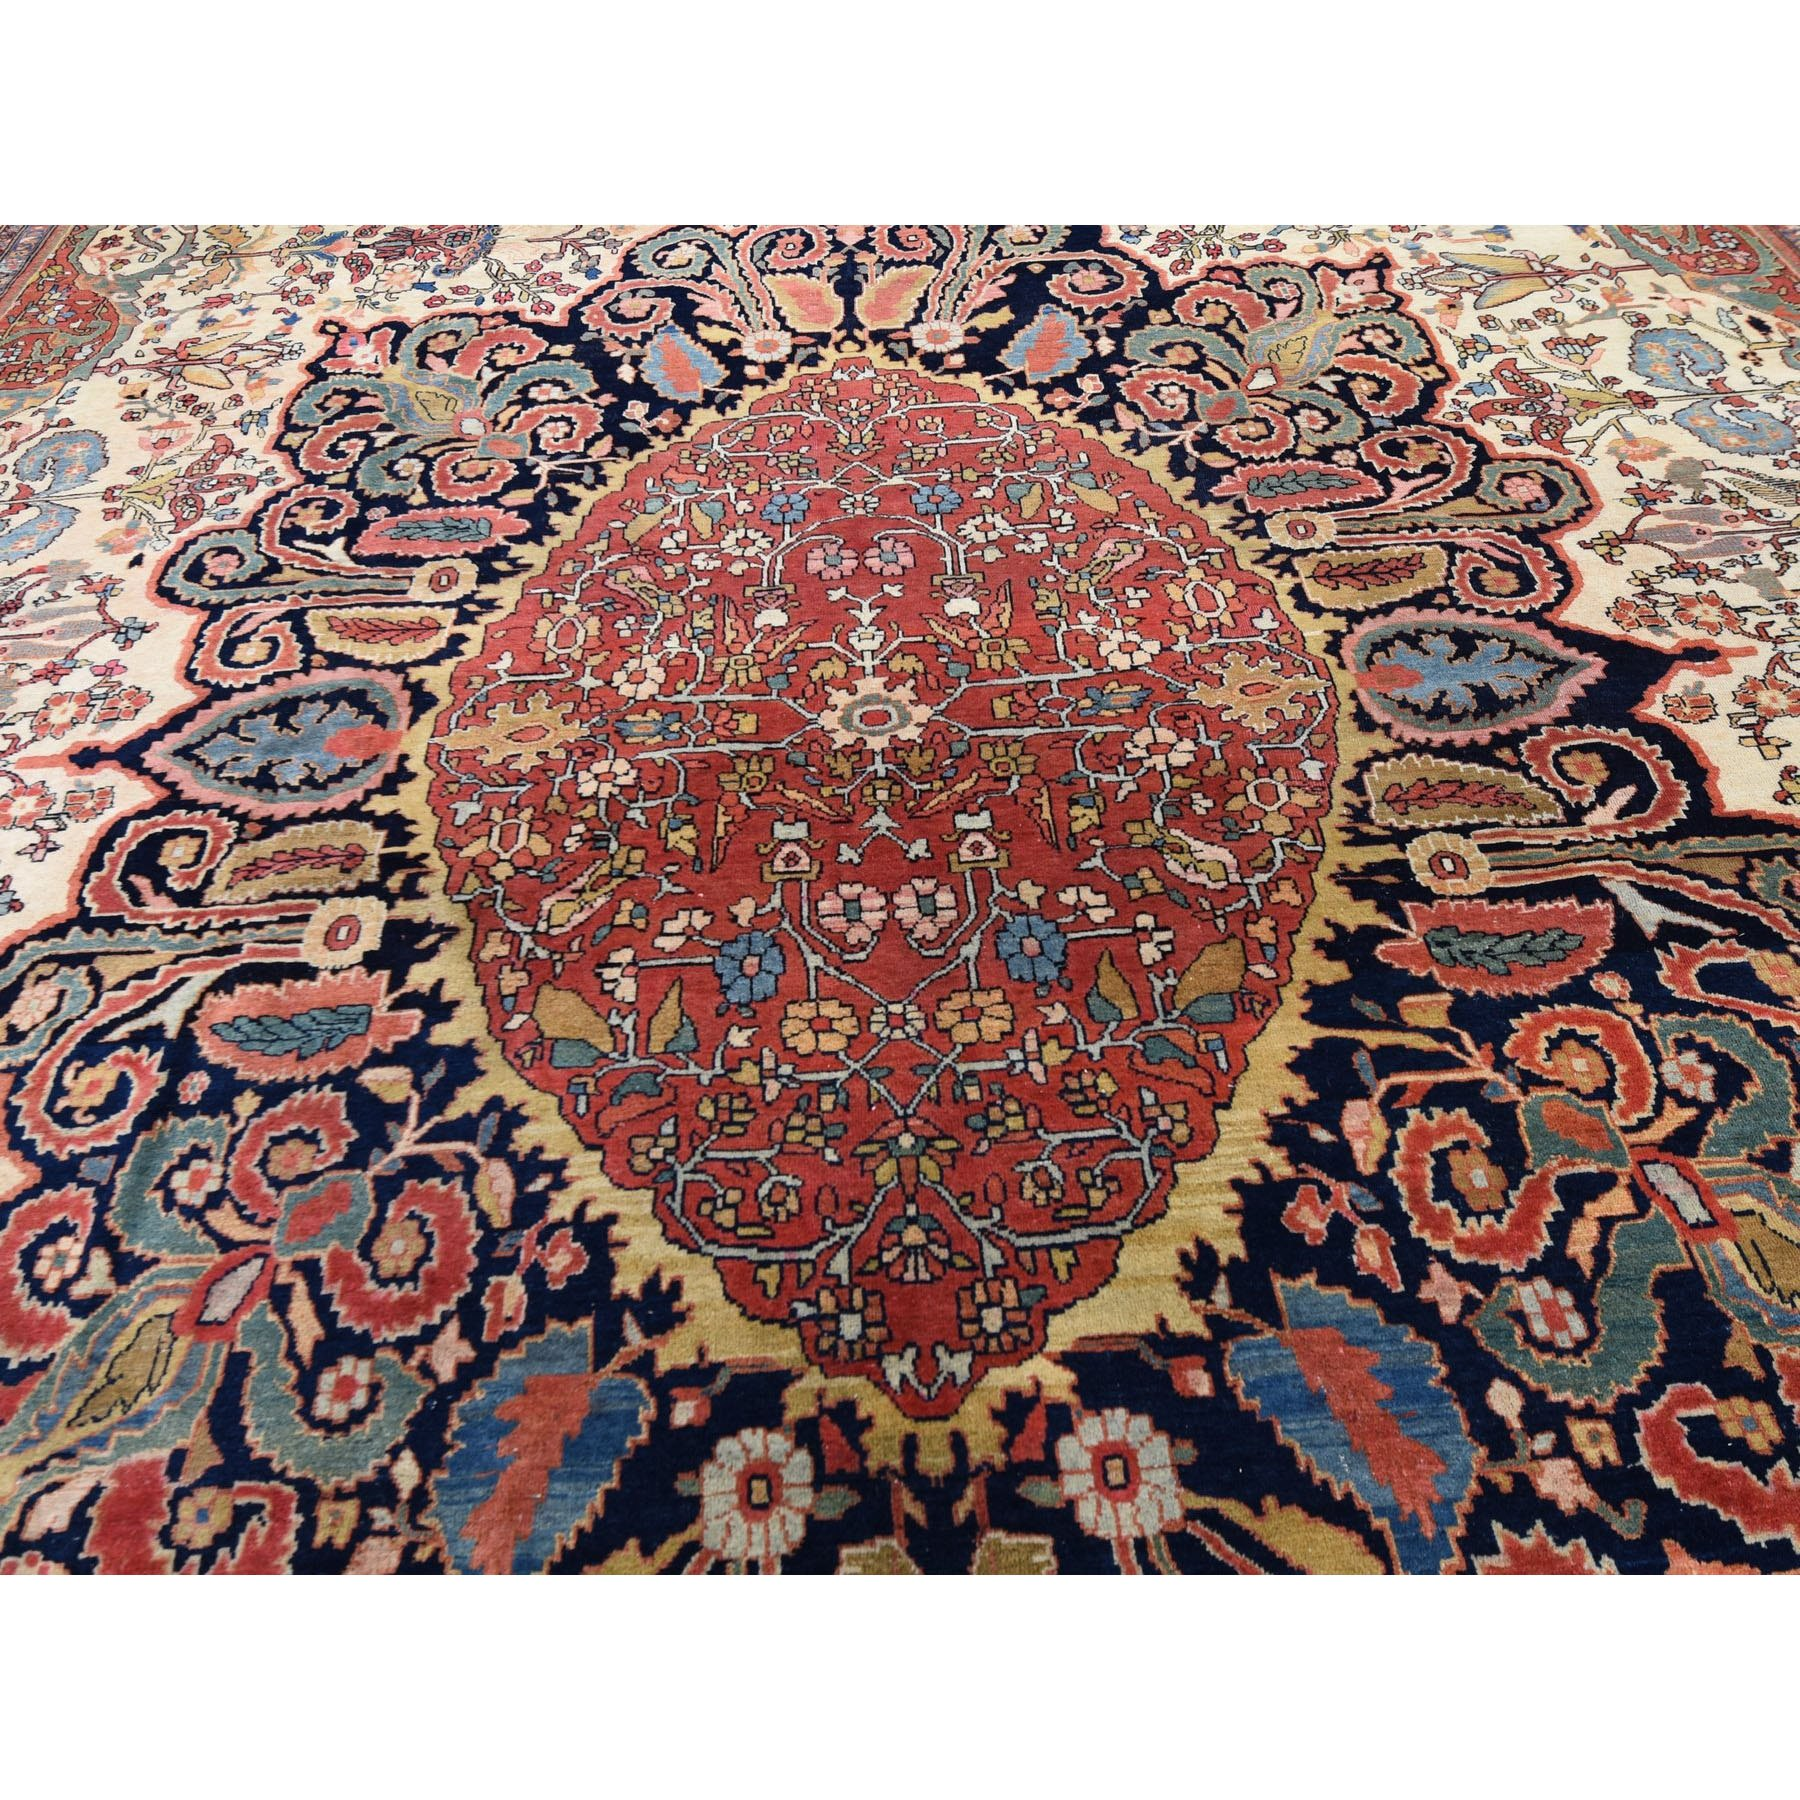 """12'2""""x18'8"""" Oversized Antique Persian Sarouk Fereghan With Birds Full Pile And Soft Hand Knotted Oriental Rug"""